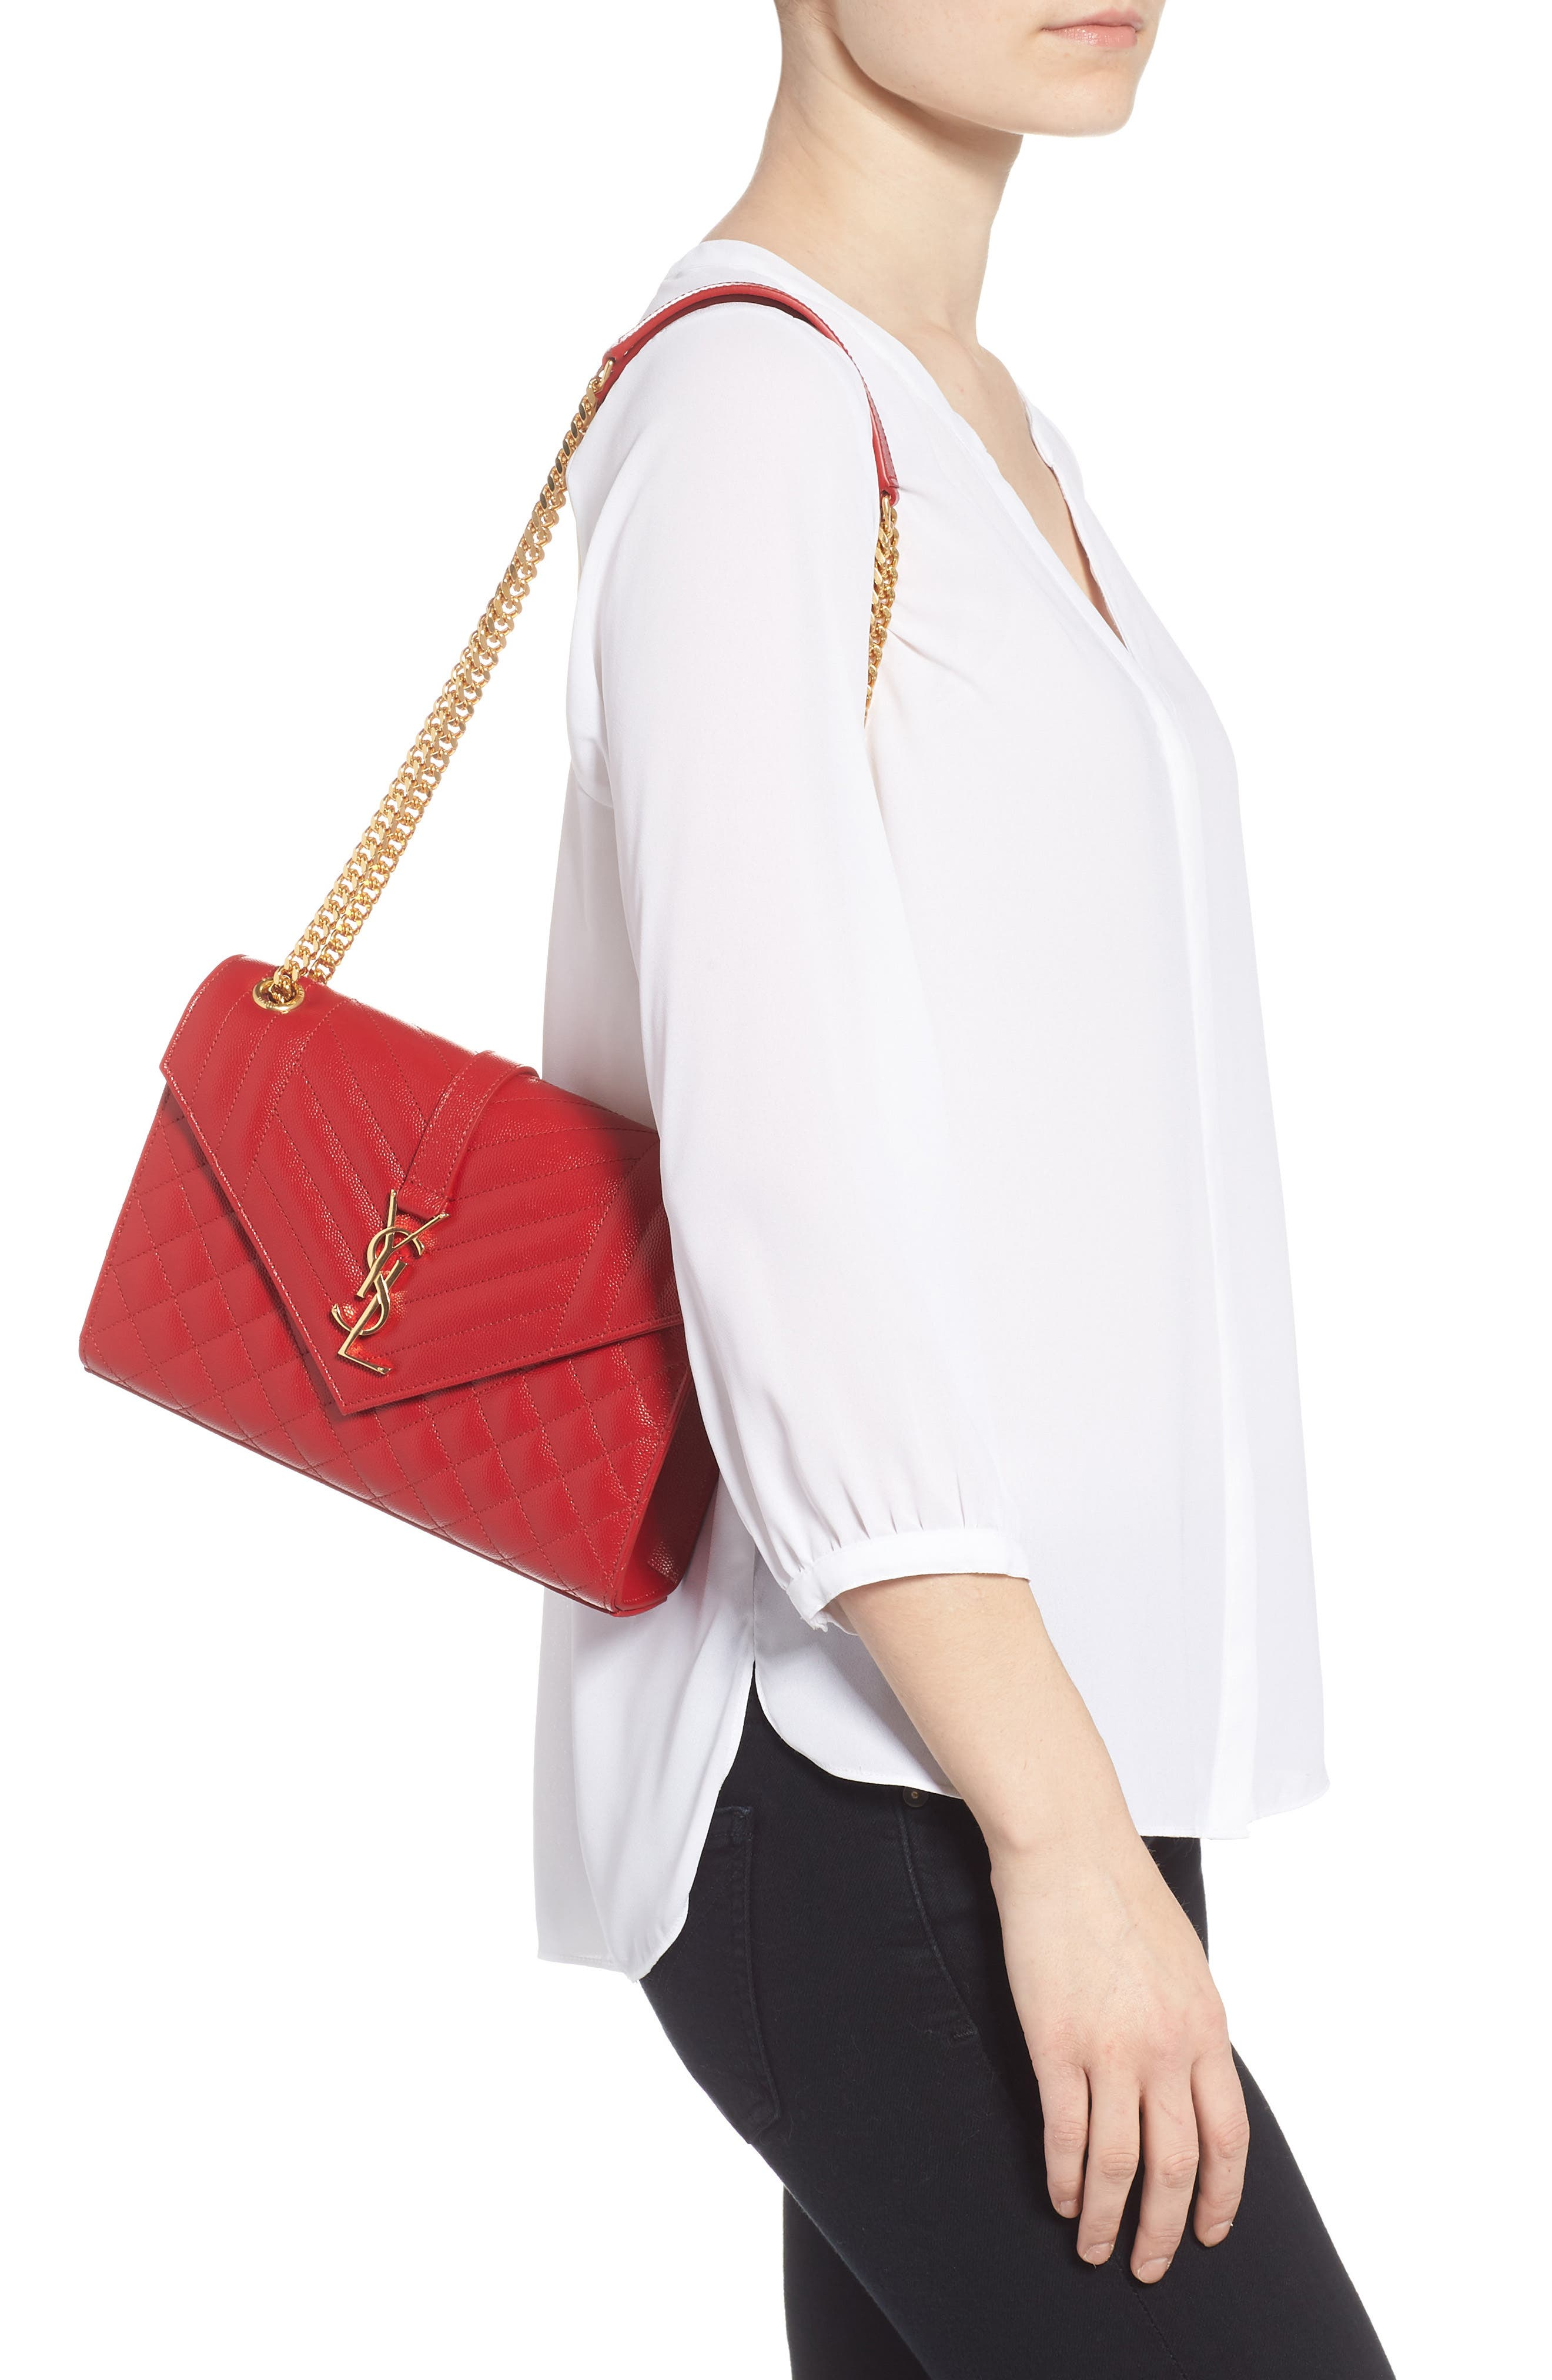 Medium Cassandre Calfskin Shoulder Bag,                             Alternate thumbnail 2, color,                             BANDANA RED